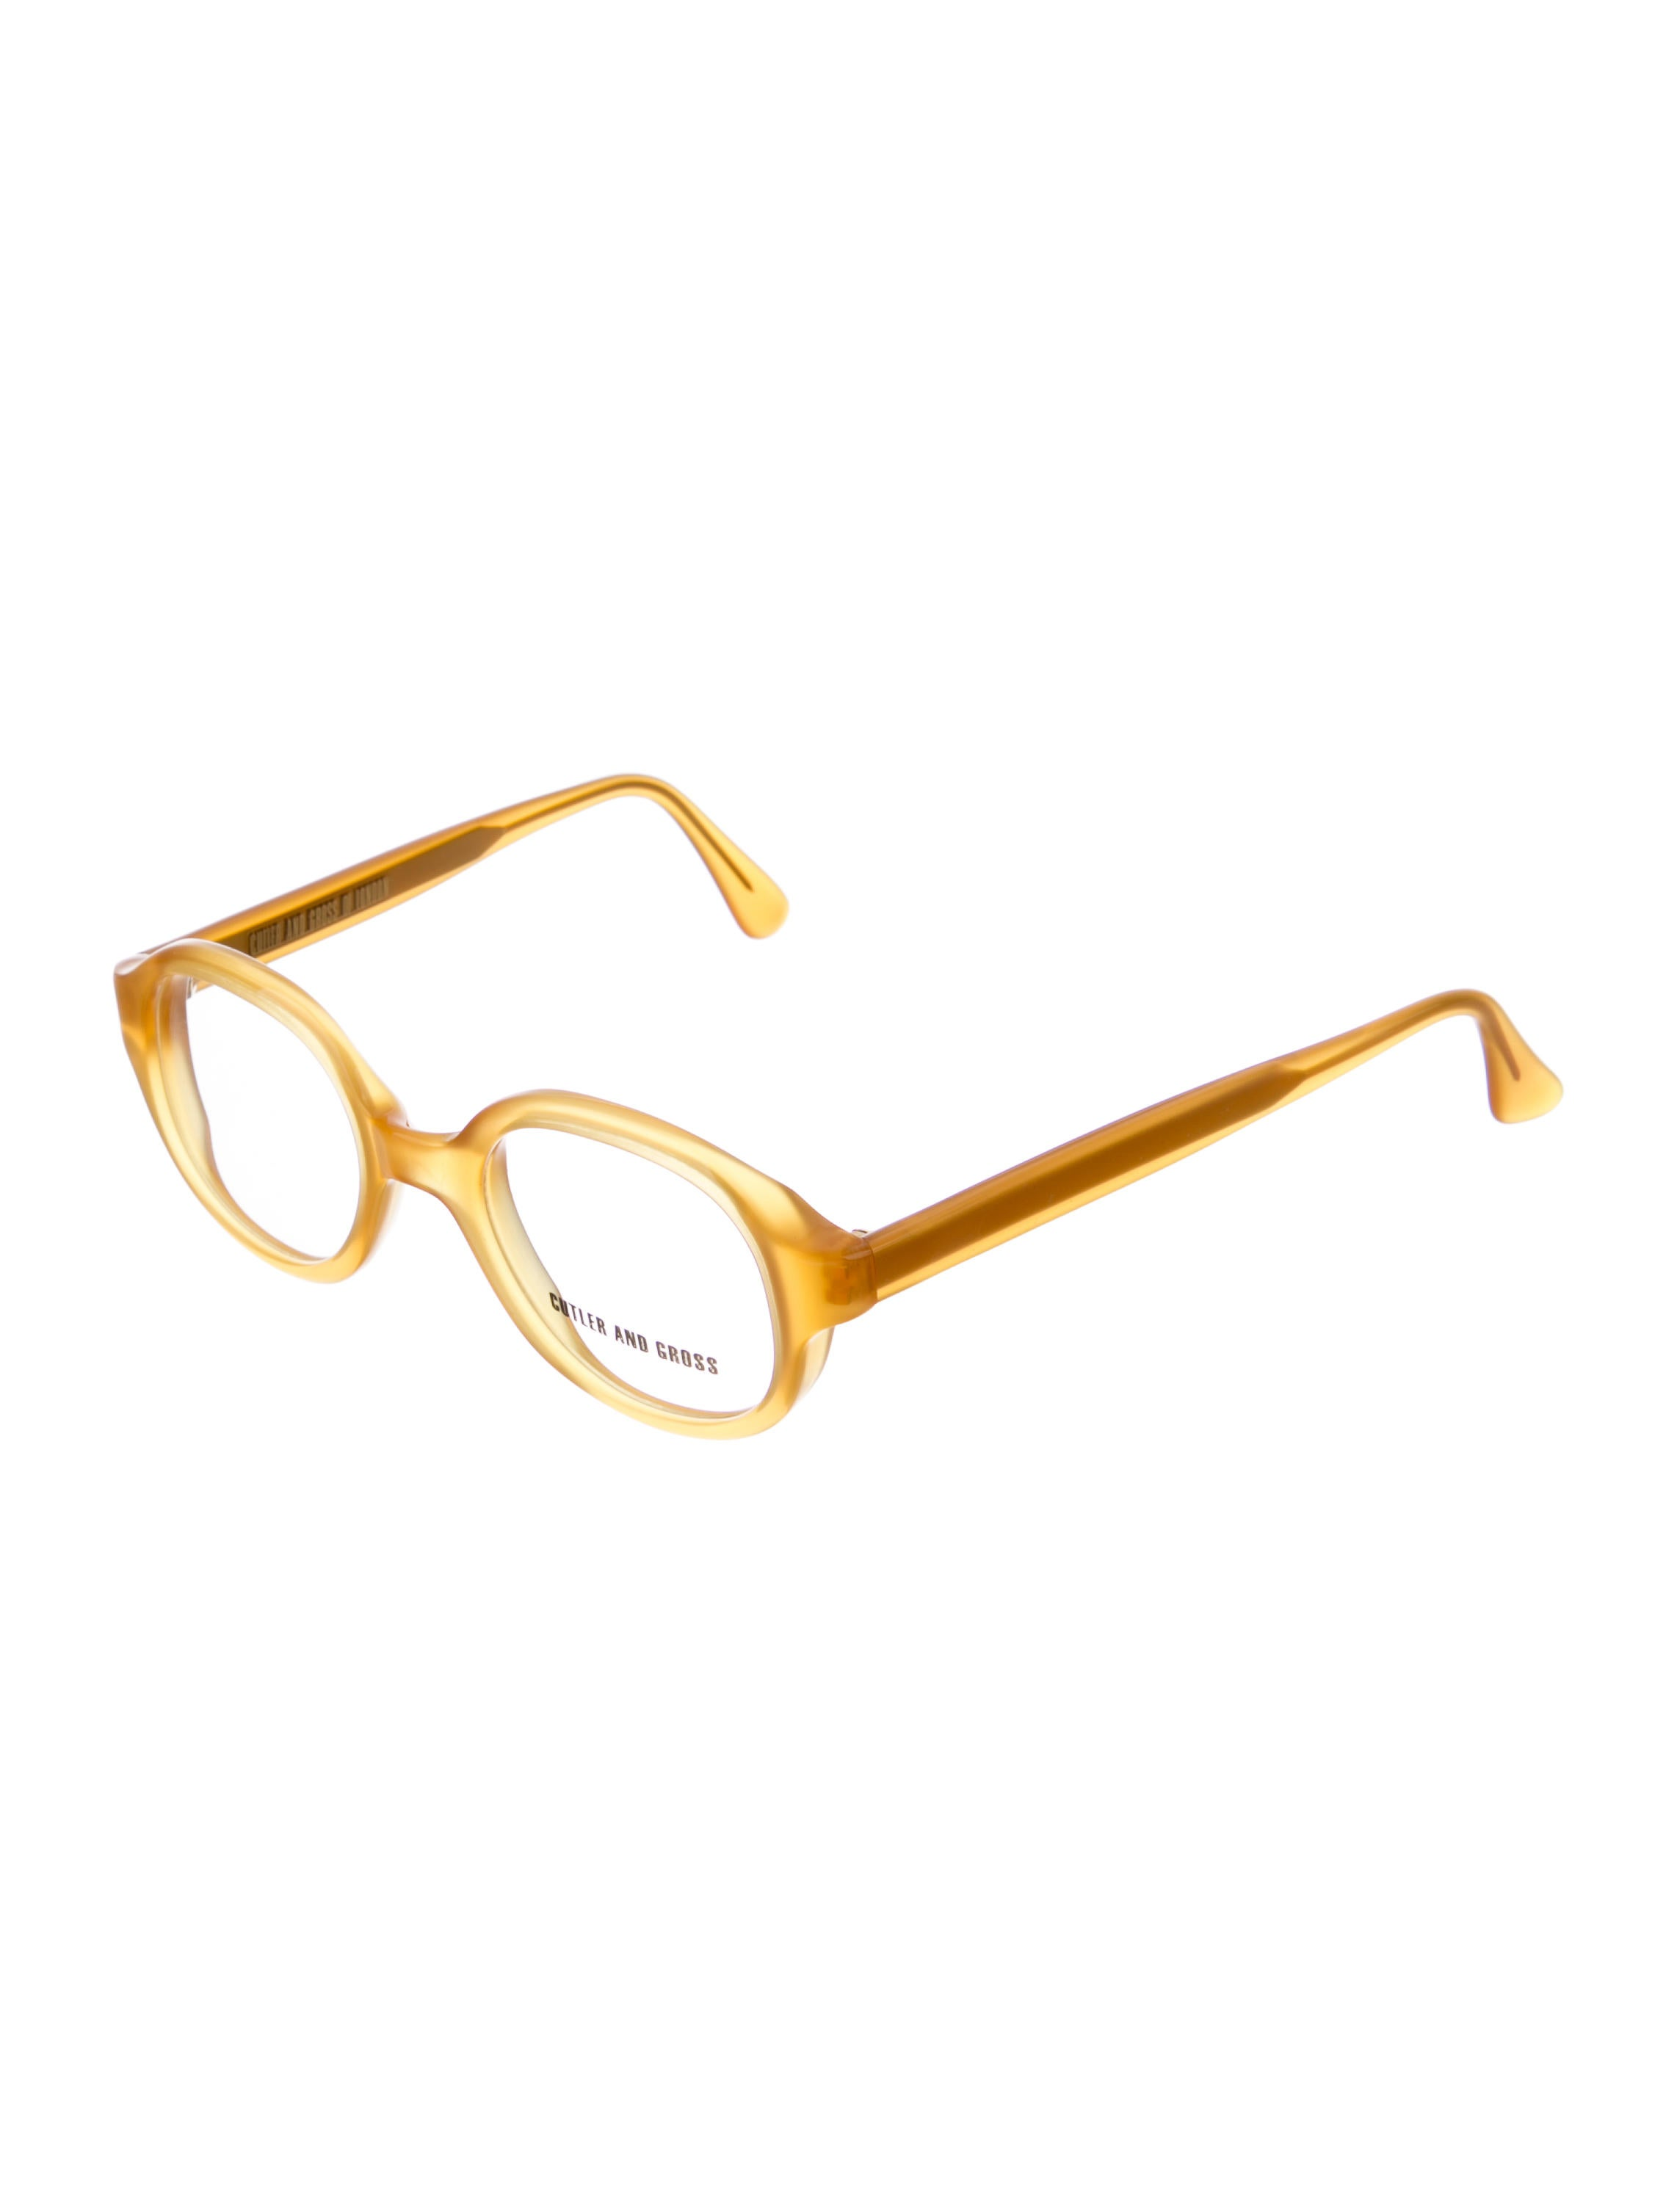 Cutler and Gross Round Frame Eyeglasses - Accessories - CUT20353 ...